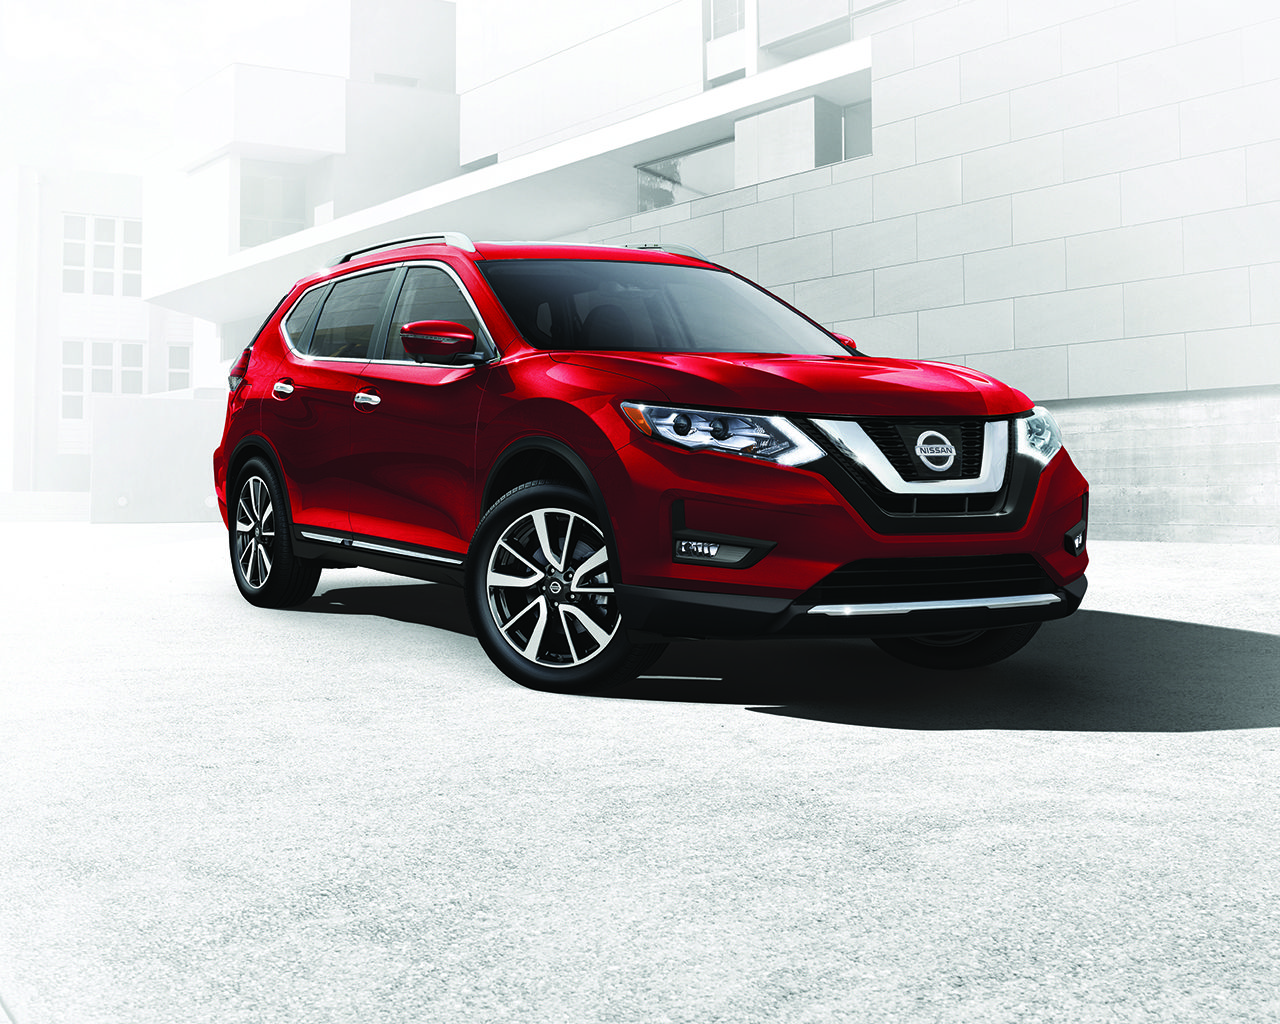 2017.5 Nissan Rogue >> Discover The All New 2017 5 Nissan Rogue Crossover Explore